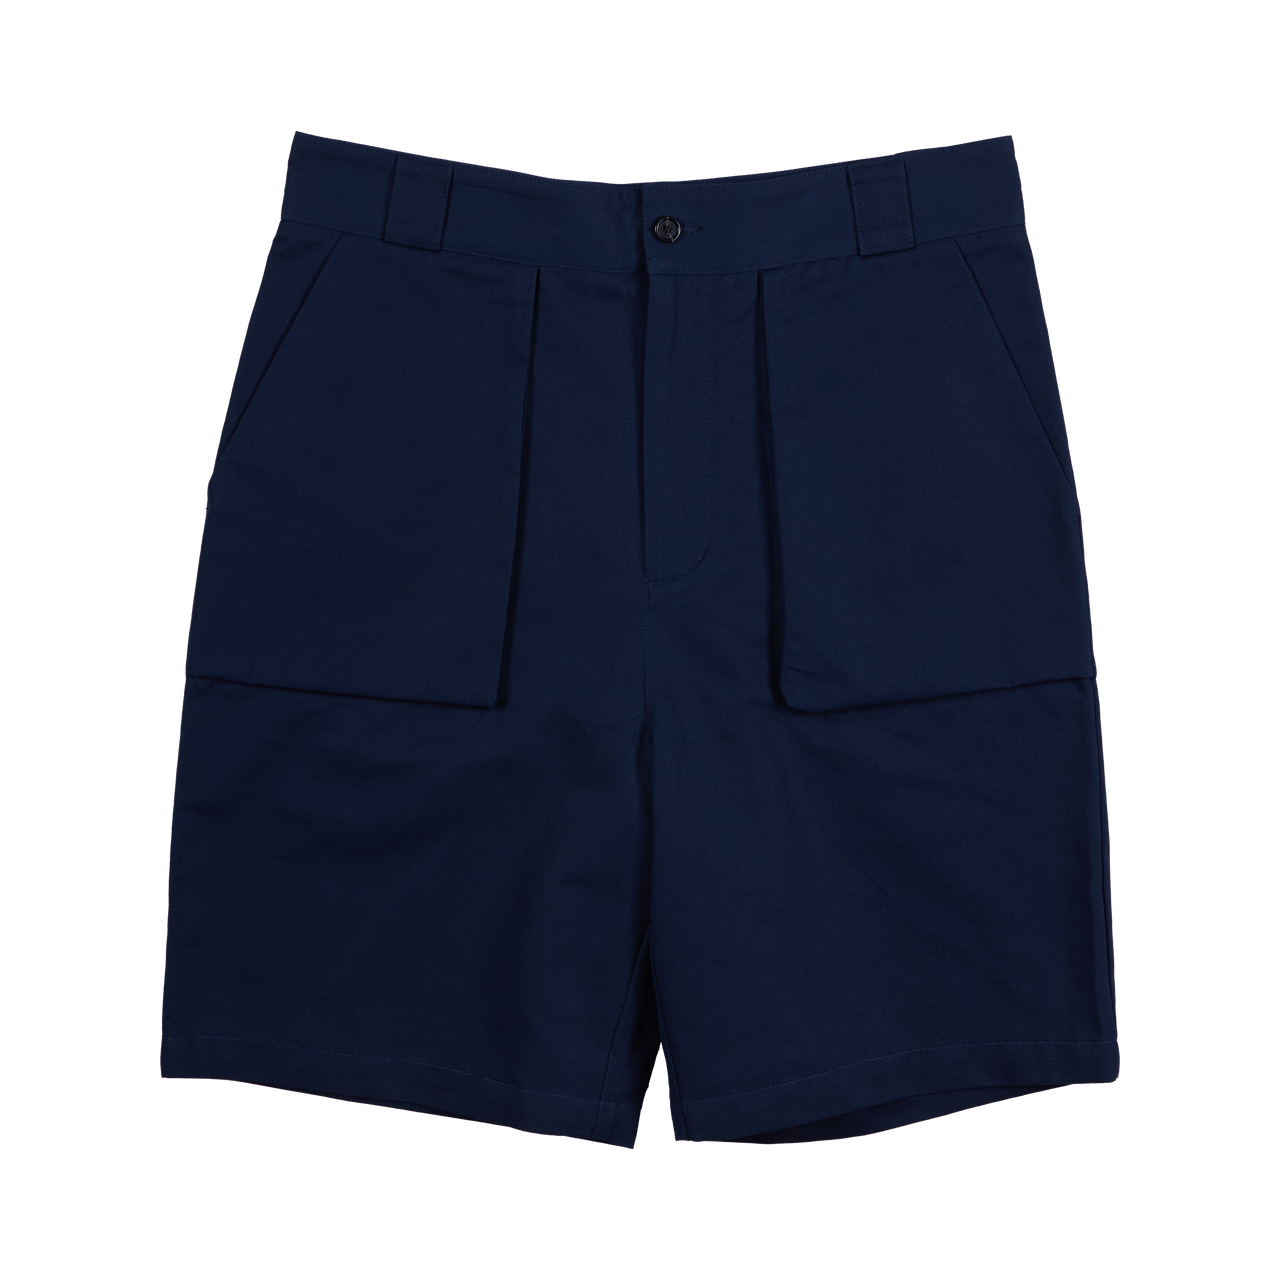 P. Johnson Walking Shorts in French Navy Cotton-Linen